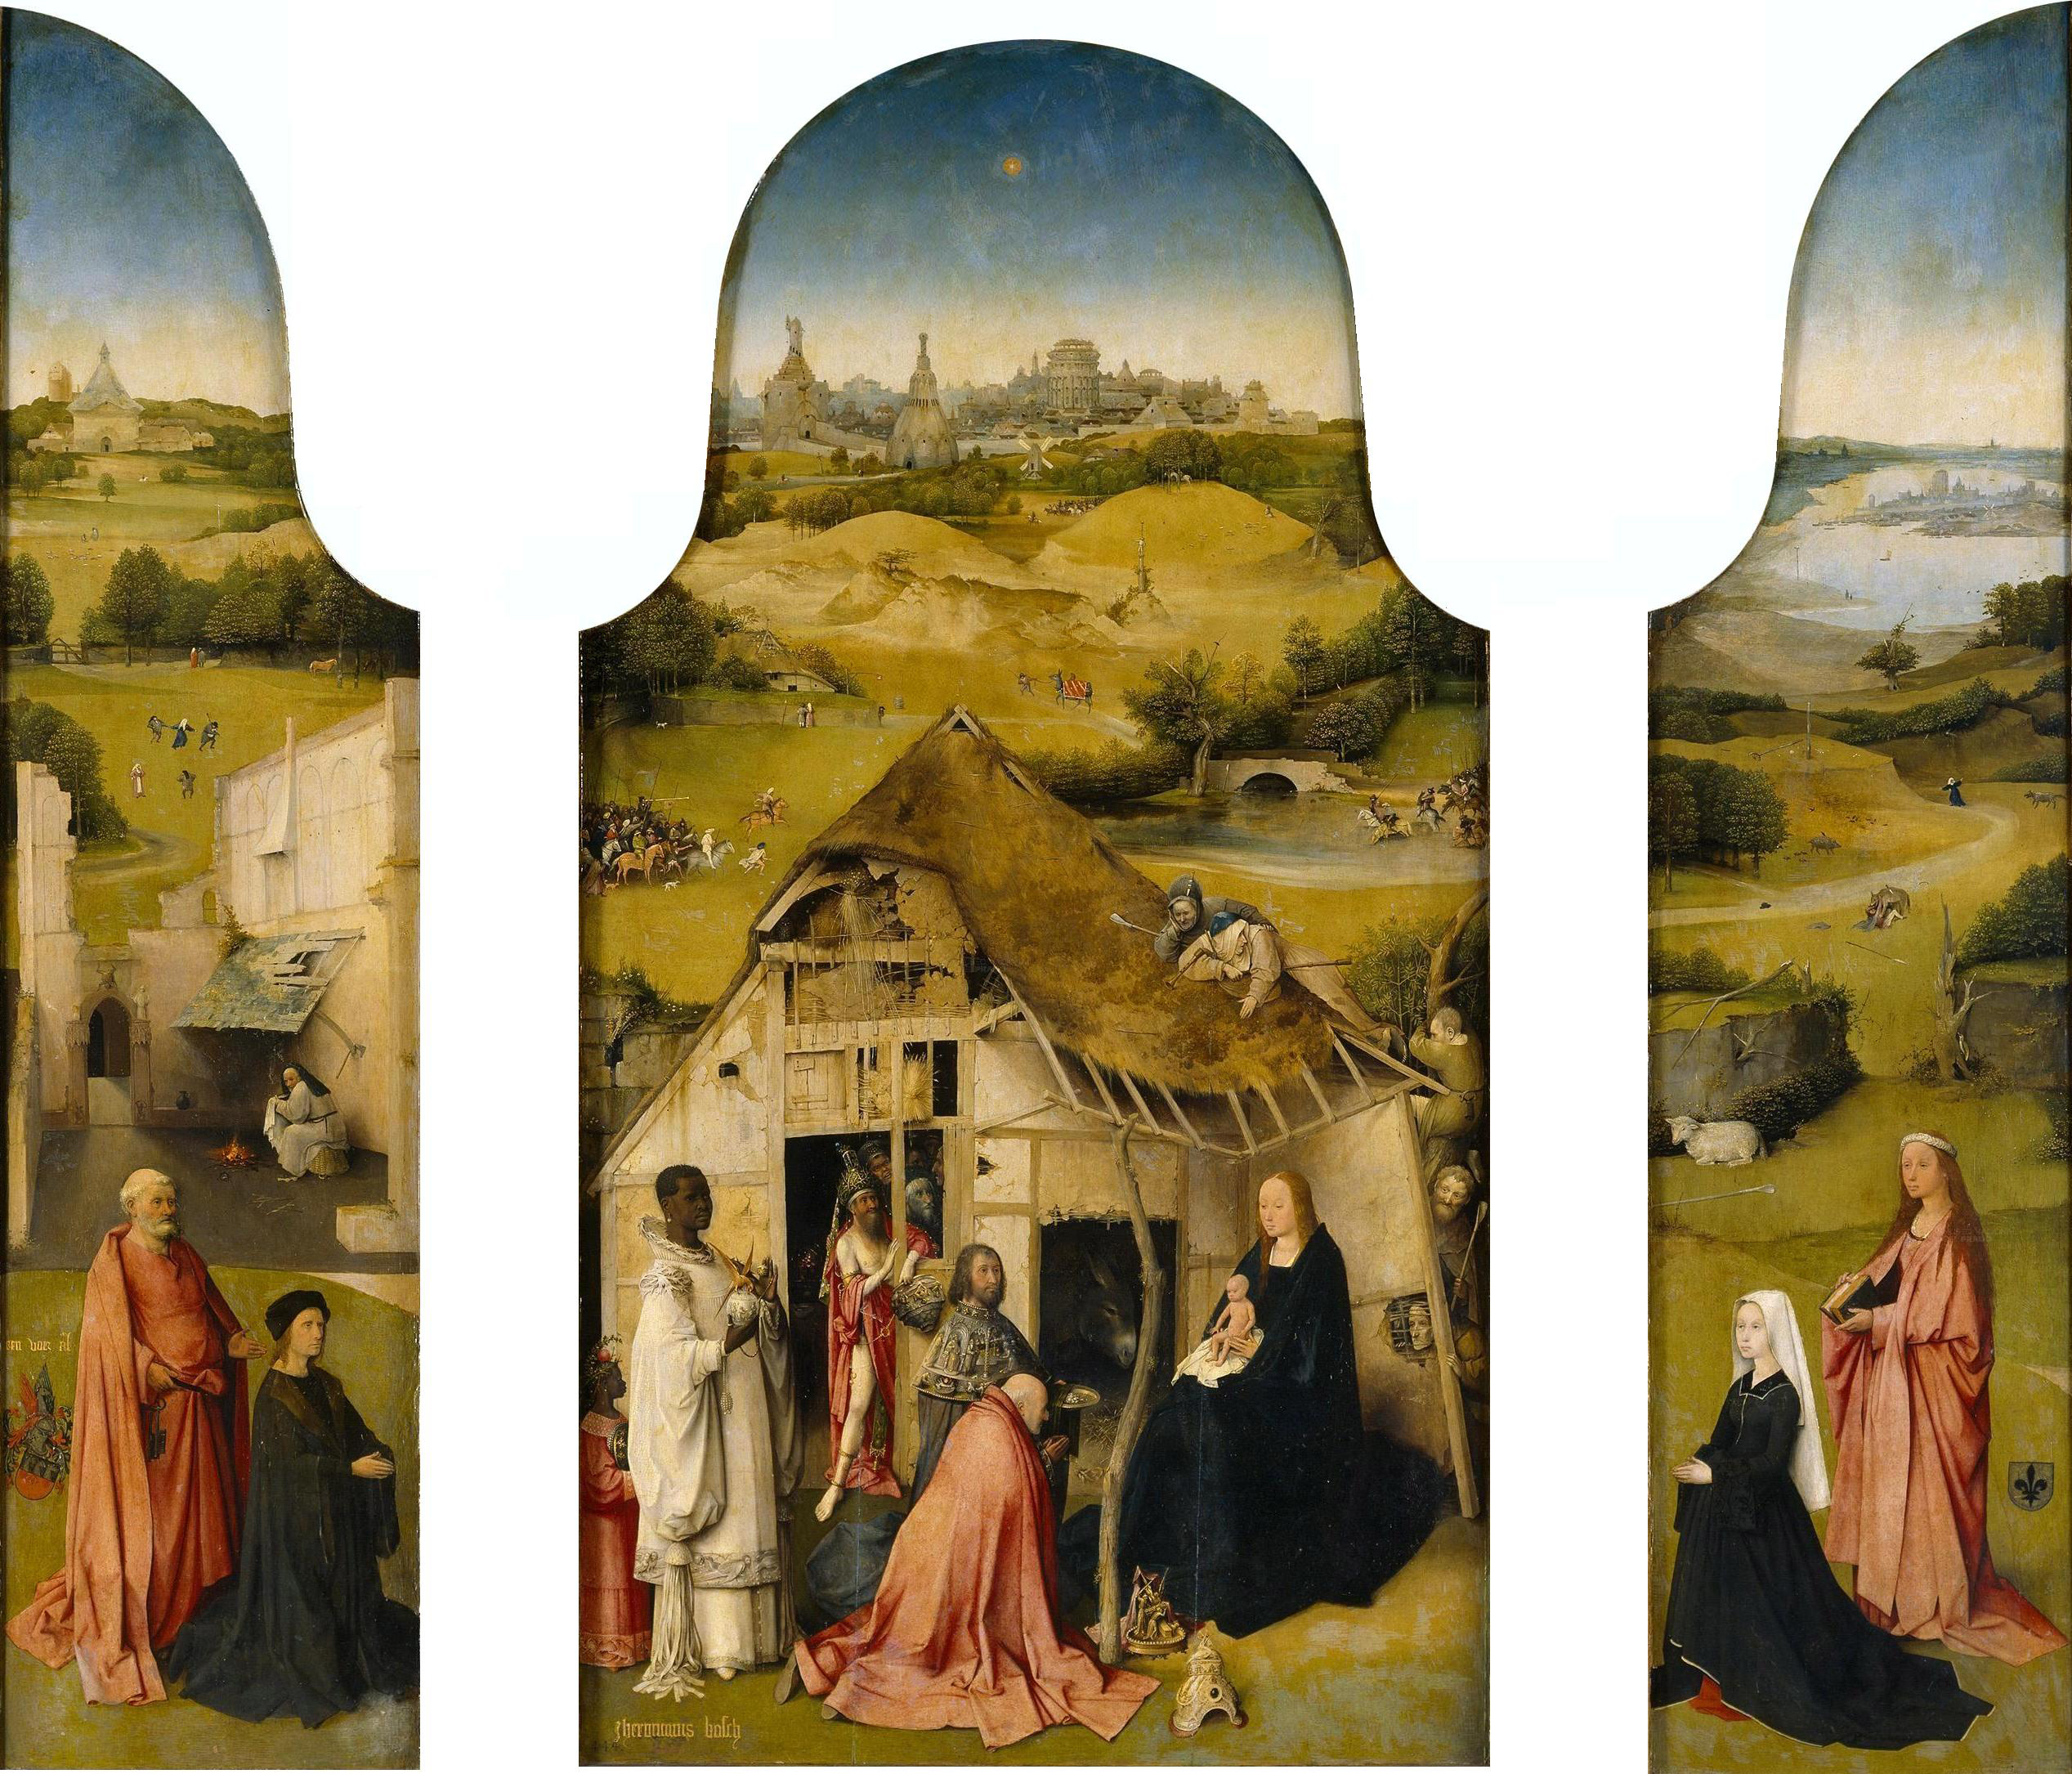 http://upload.wikimedia.org/wikipedia/commons/7/7a/J._Bosch_Adoration_of_the_Magi_Triptych.jpg